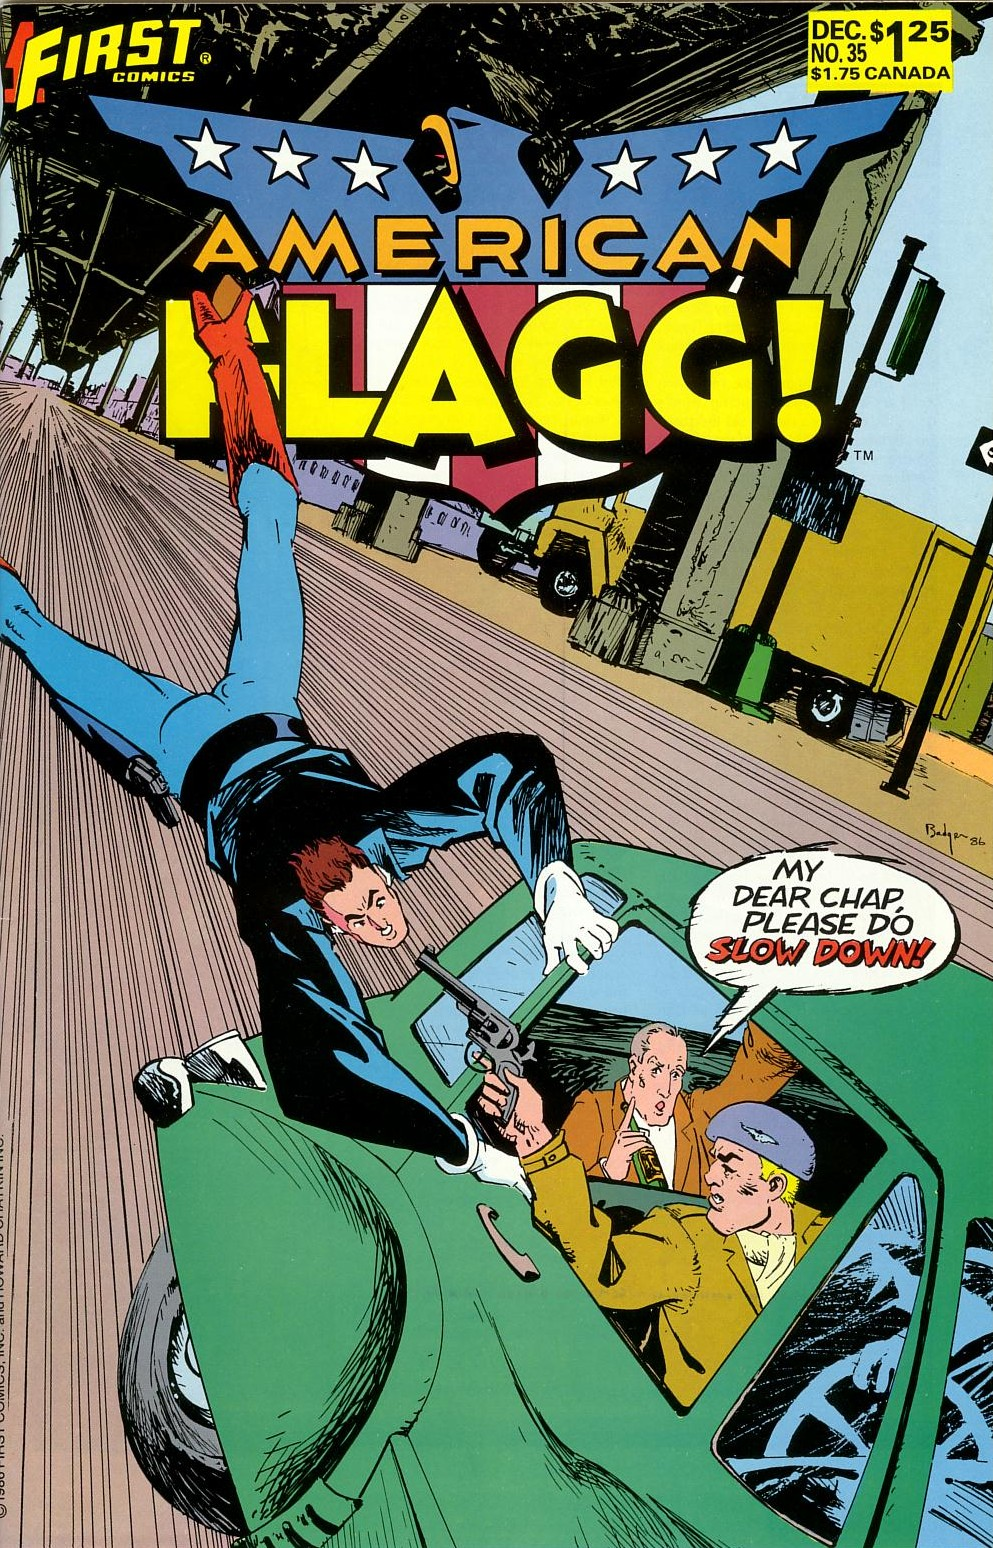 American Flagg! 35 Page 1